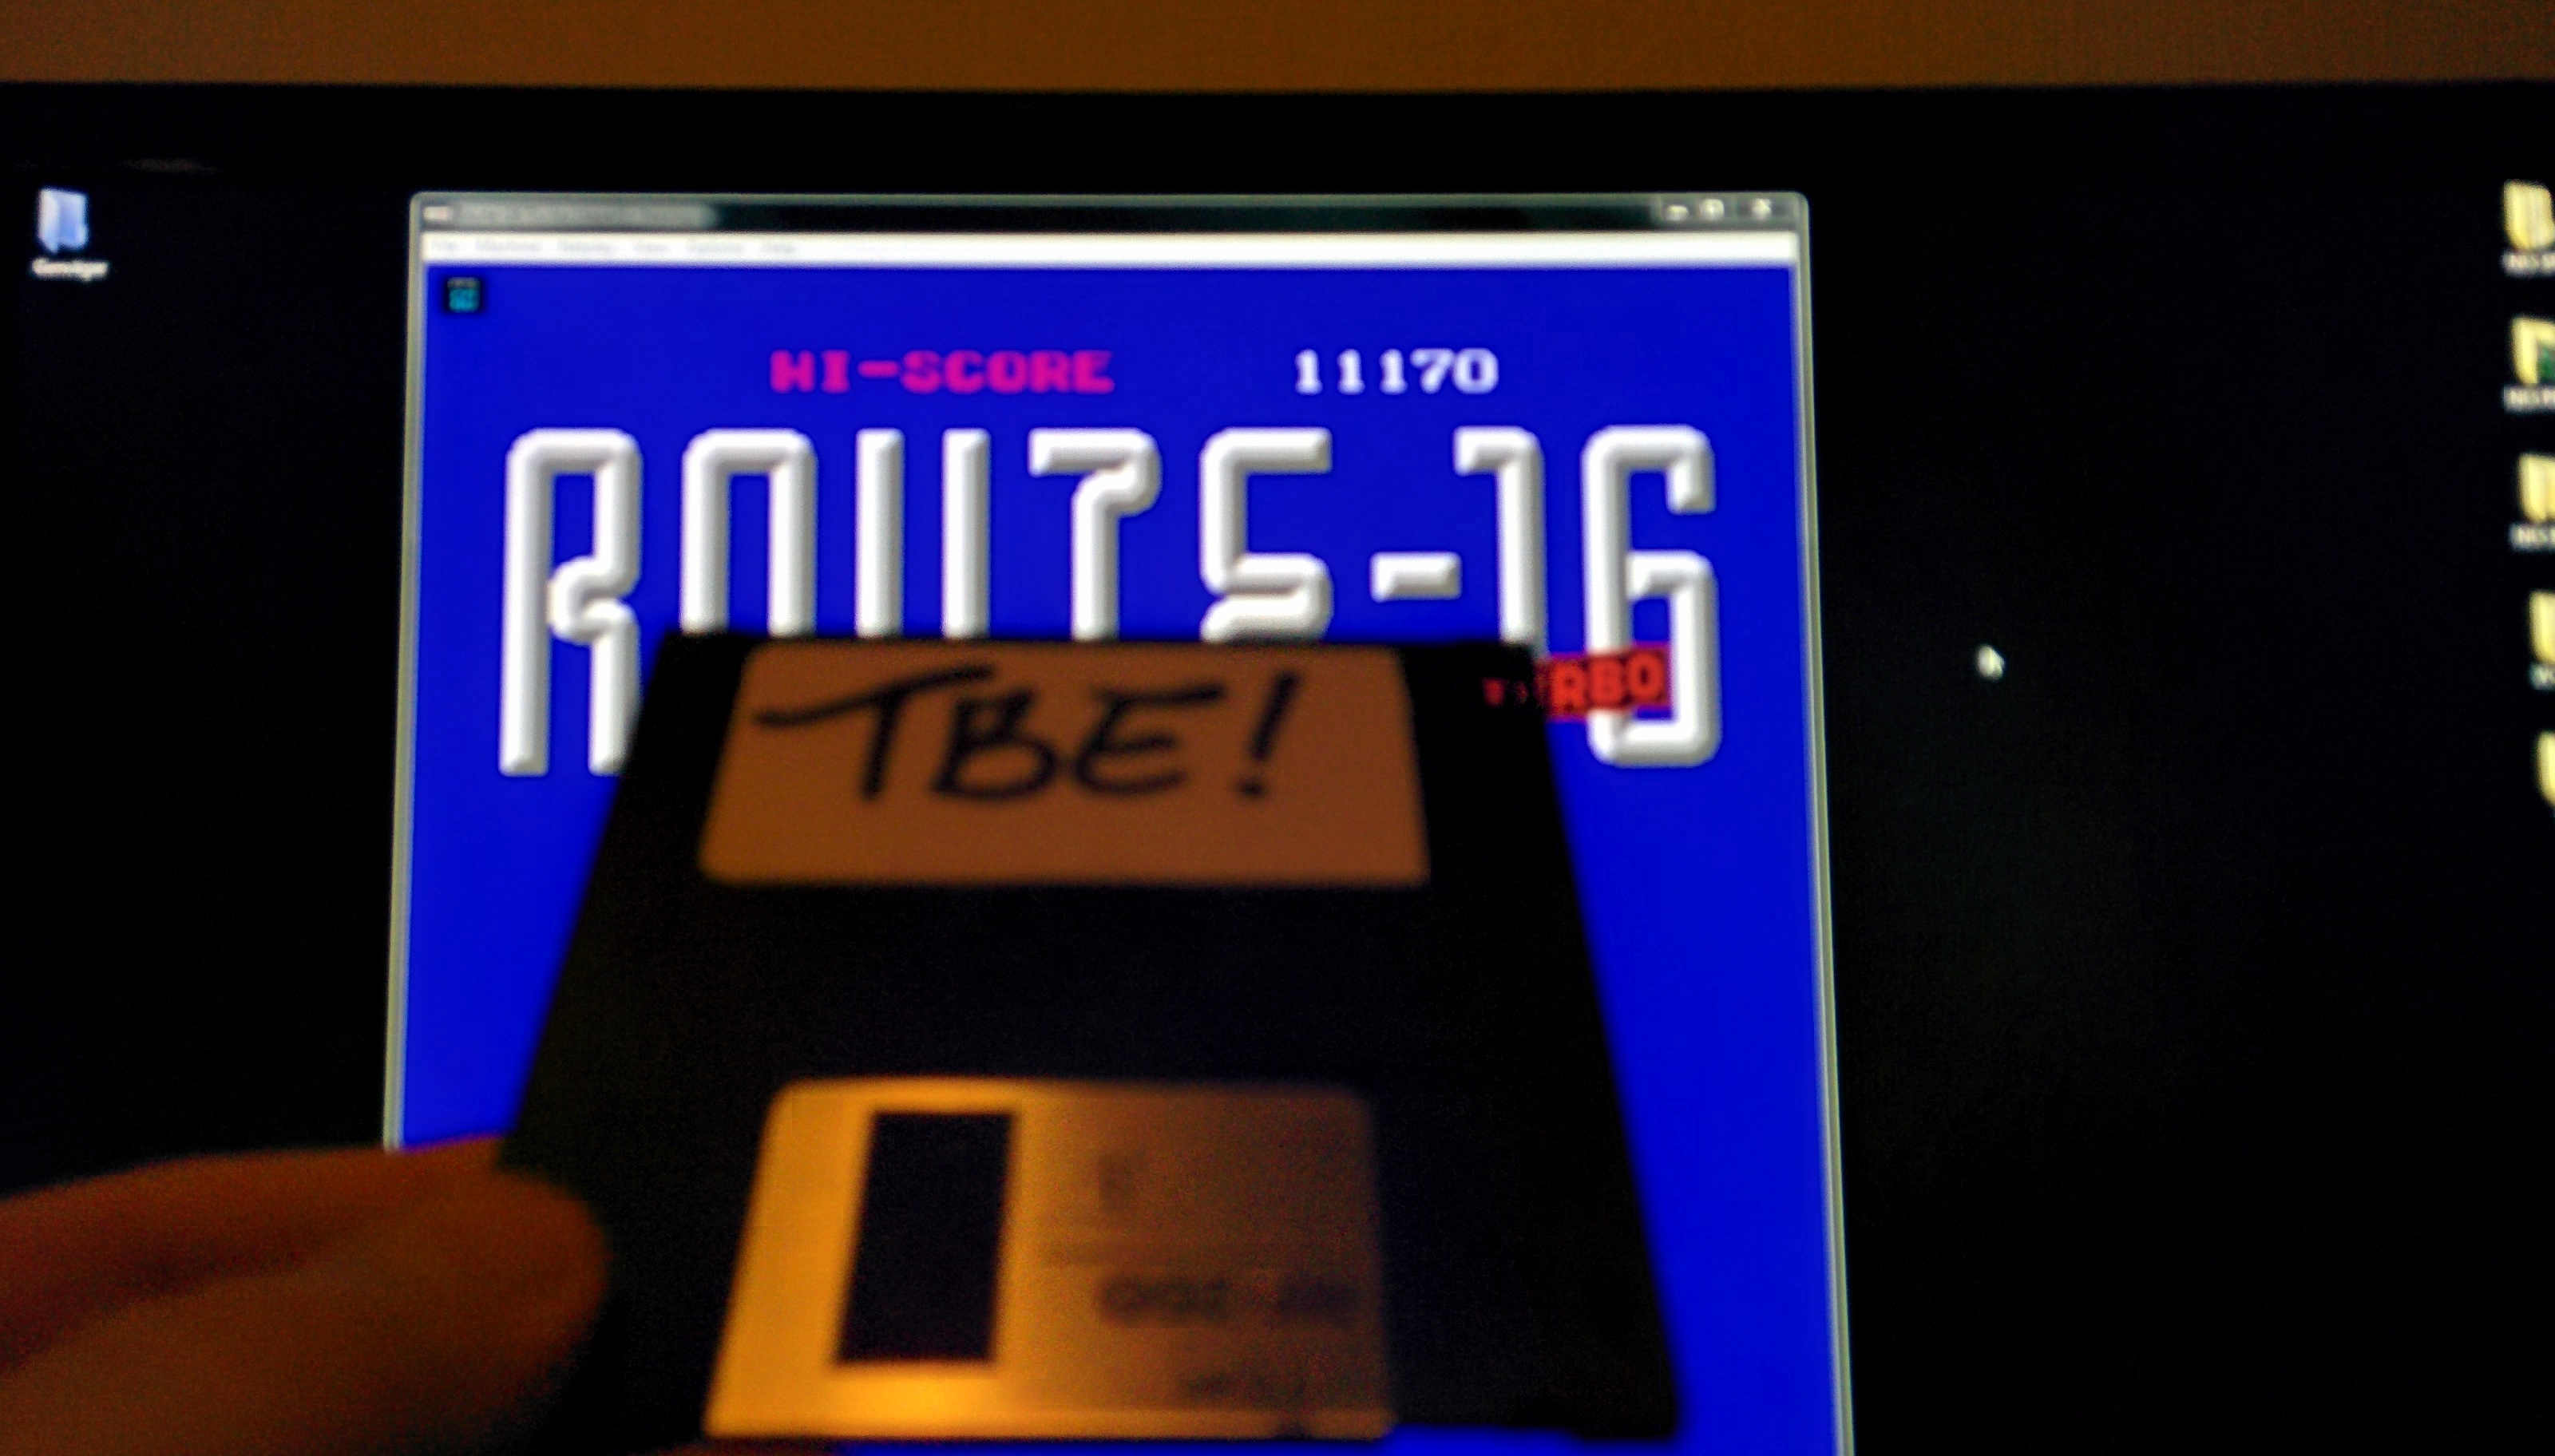 Sixx: Route-16 Turbo (NES/Famicom Emulated) 11,170 points on 2014-11-20 01:40:47